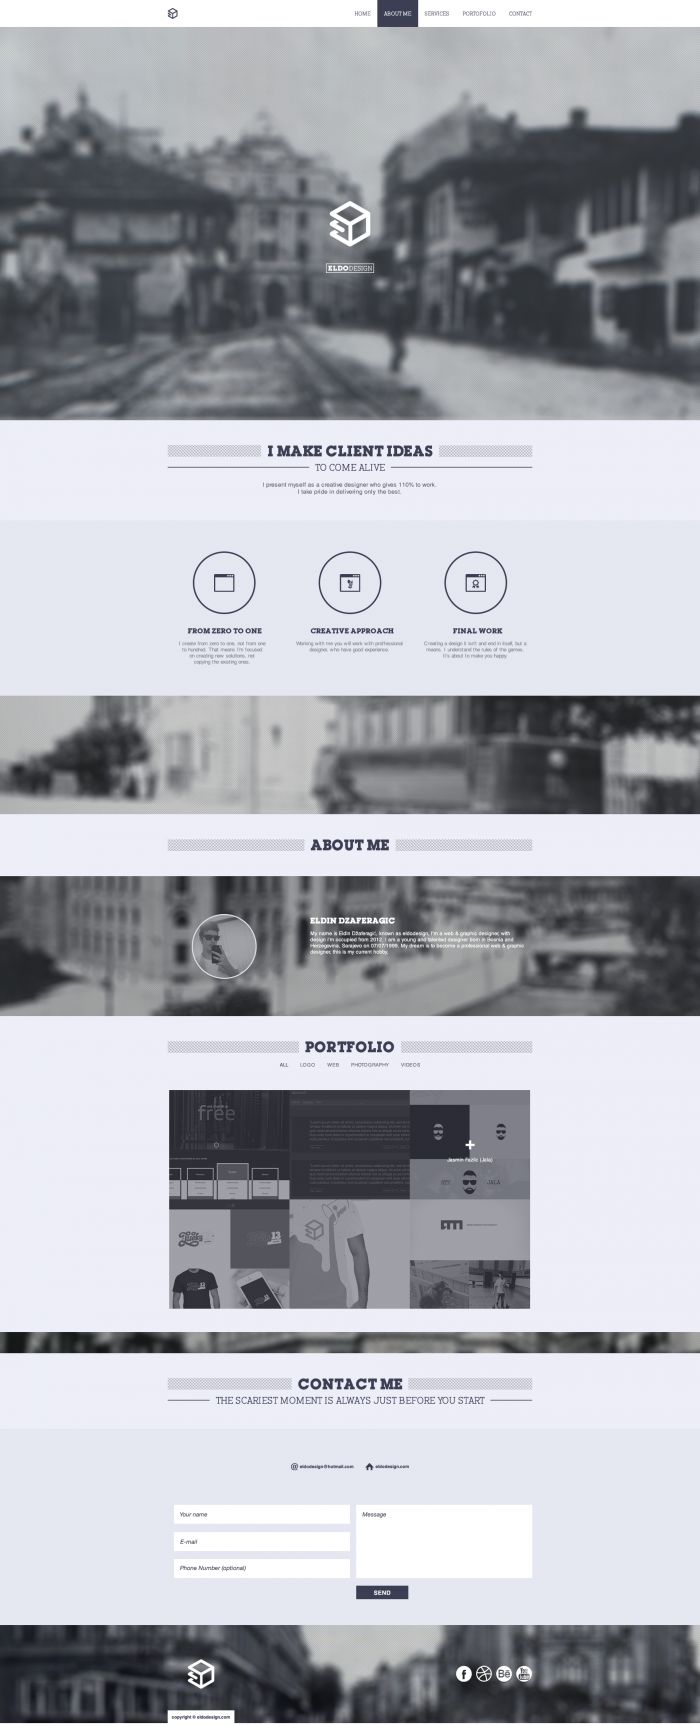 best images about web designs app landing page i present my personal site which will soon be online on the website you can see all about me my ability and my knowledge feel to contact me